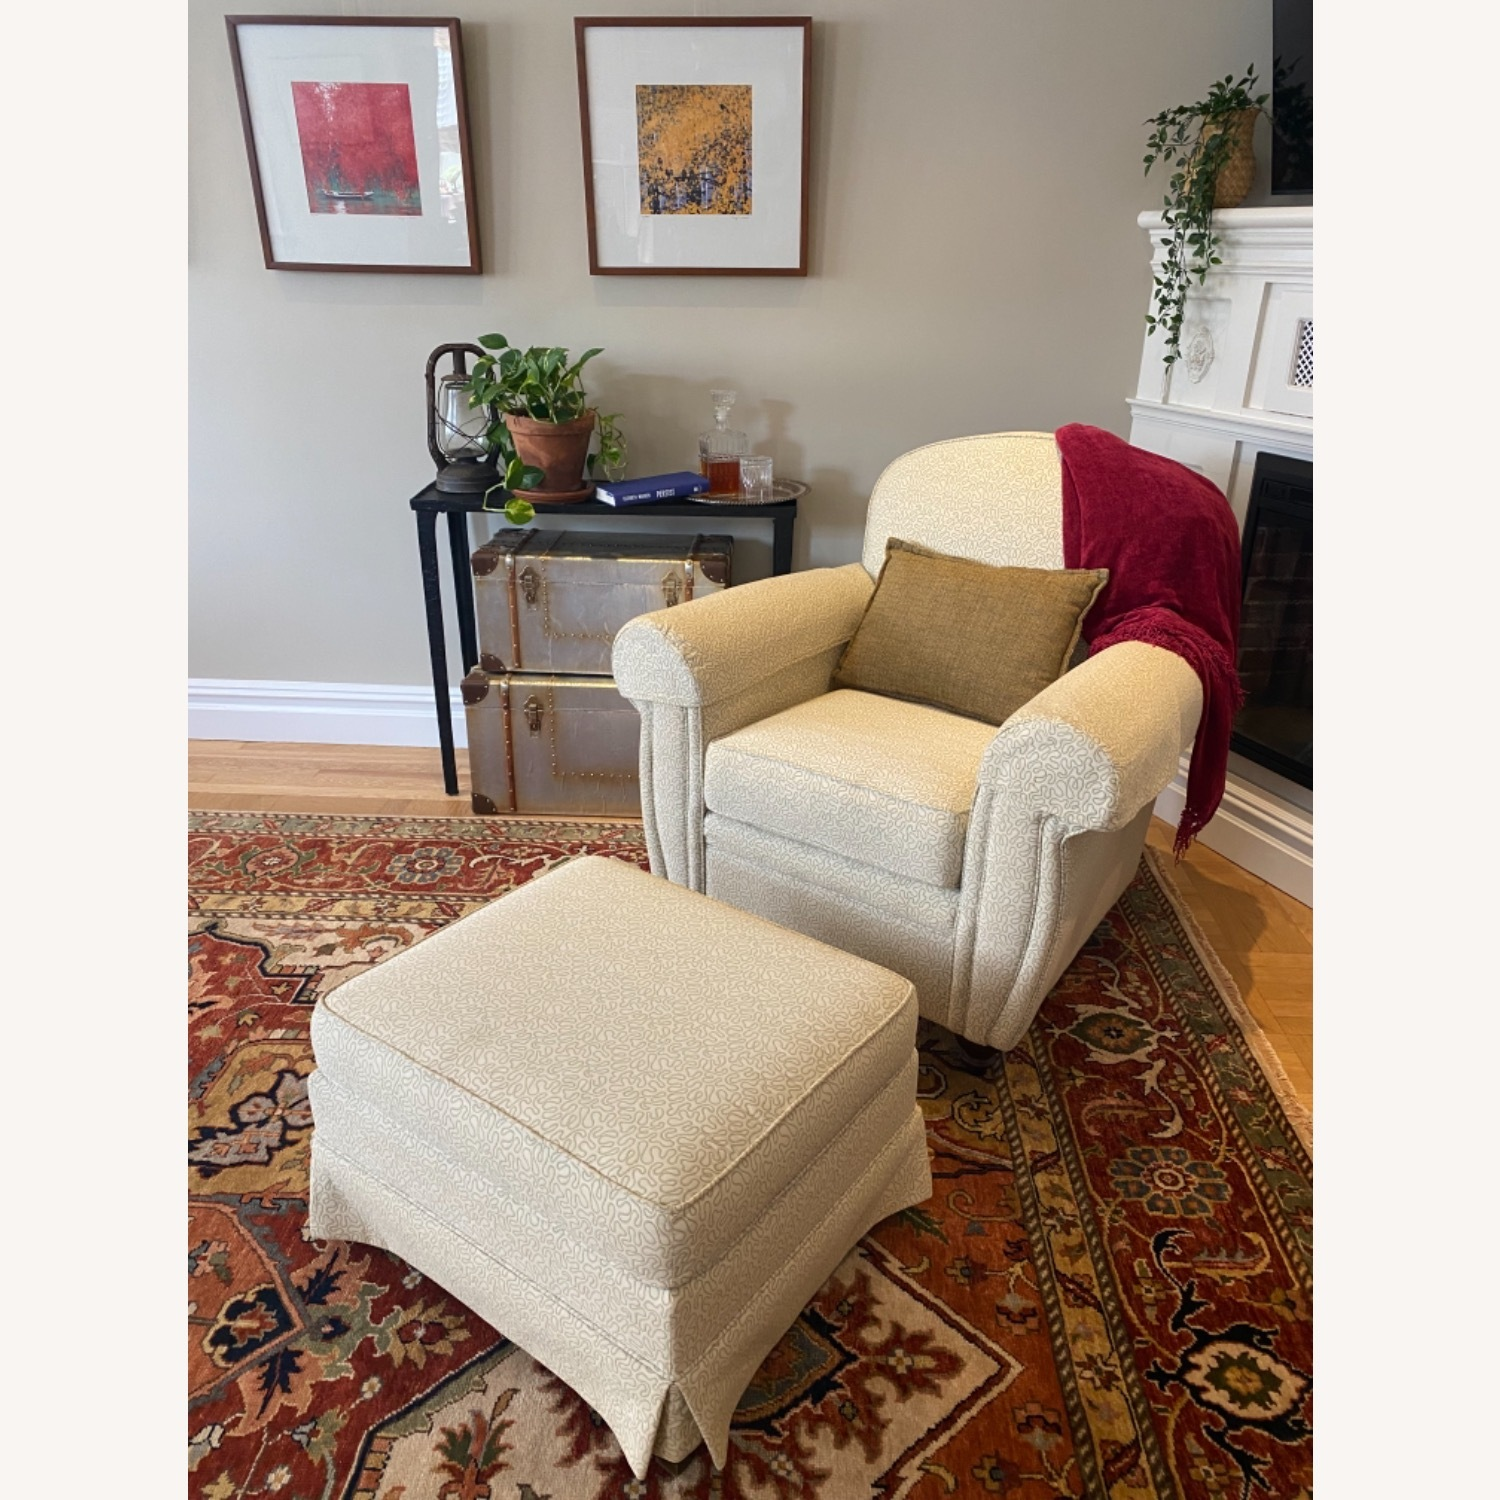 Ethan Allen 2 Upholstered Arm Chairs with 1 Ottoman - image-1